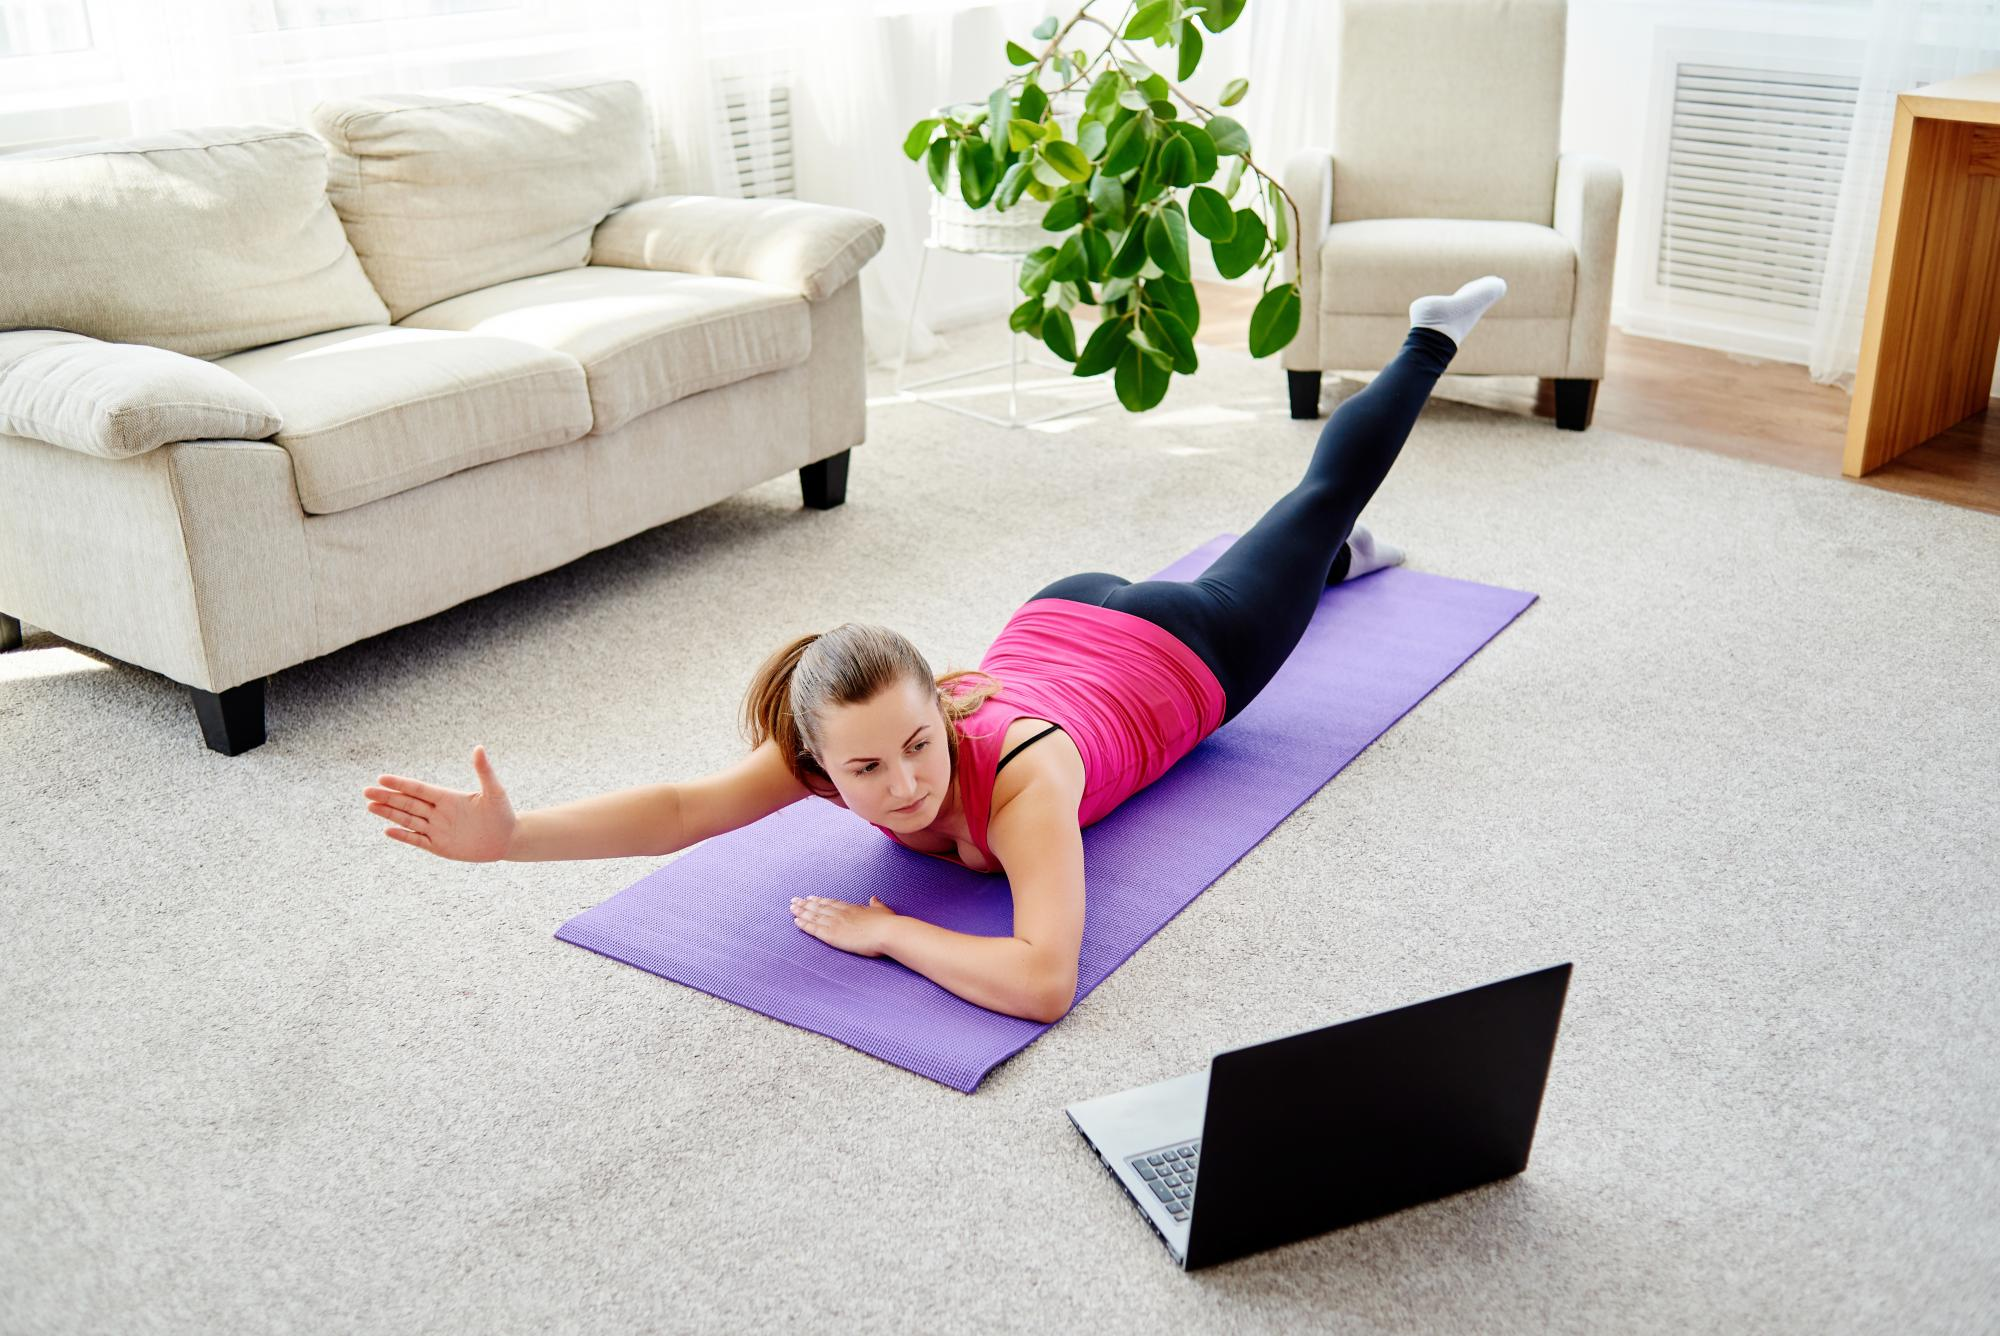 Woman doing exercises to prevent lower back pain when working from home